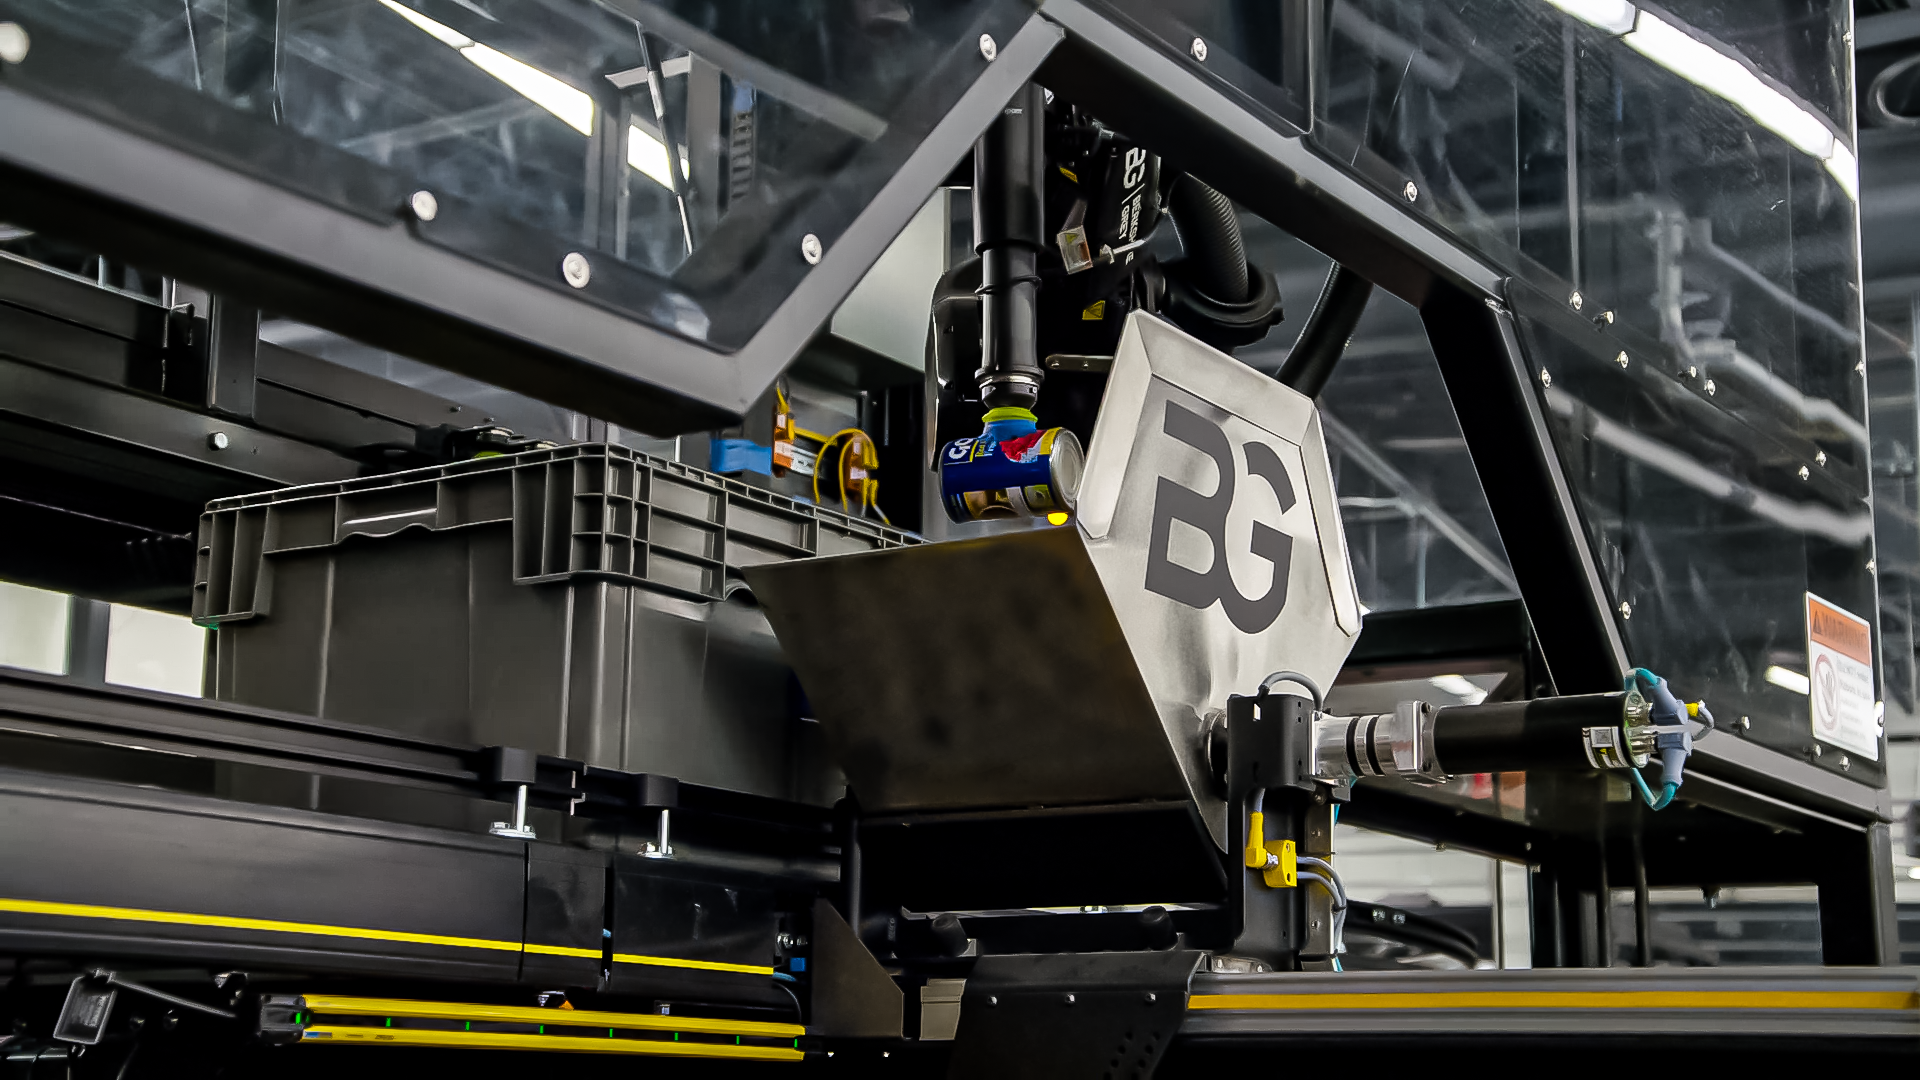 Ecommerce and Packaging Handling Companies Leverage Berkshire Grey AI-enabled Robotic Solutions